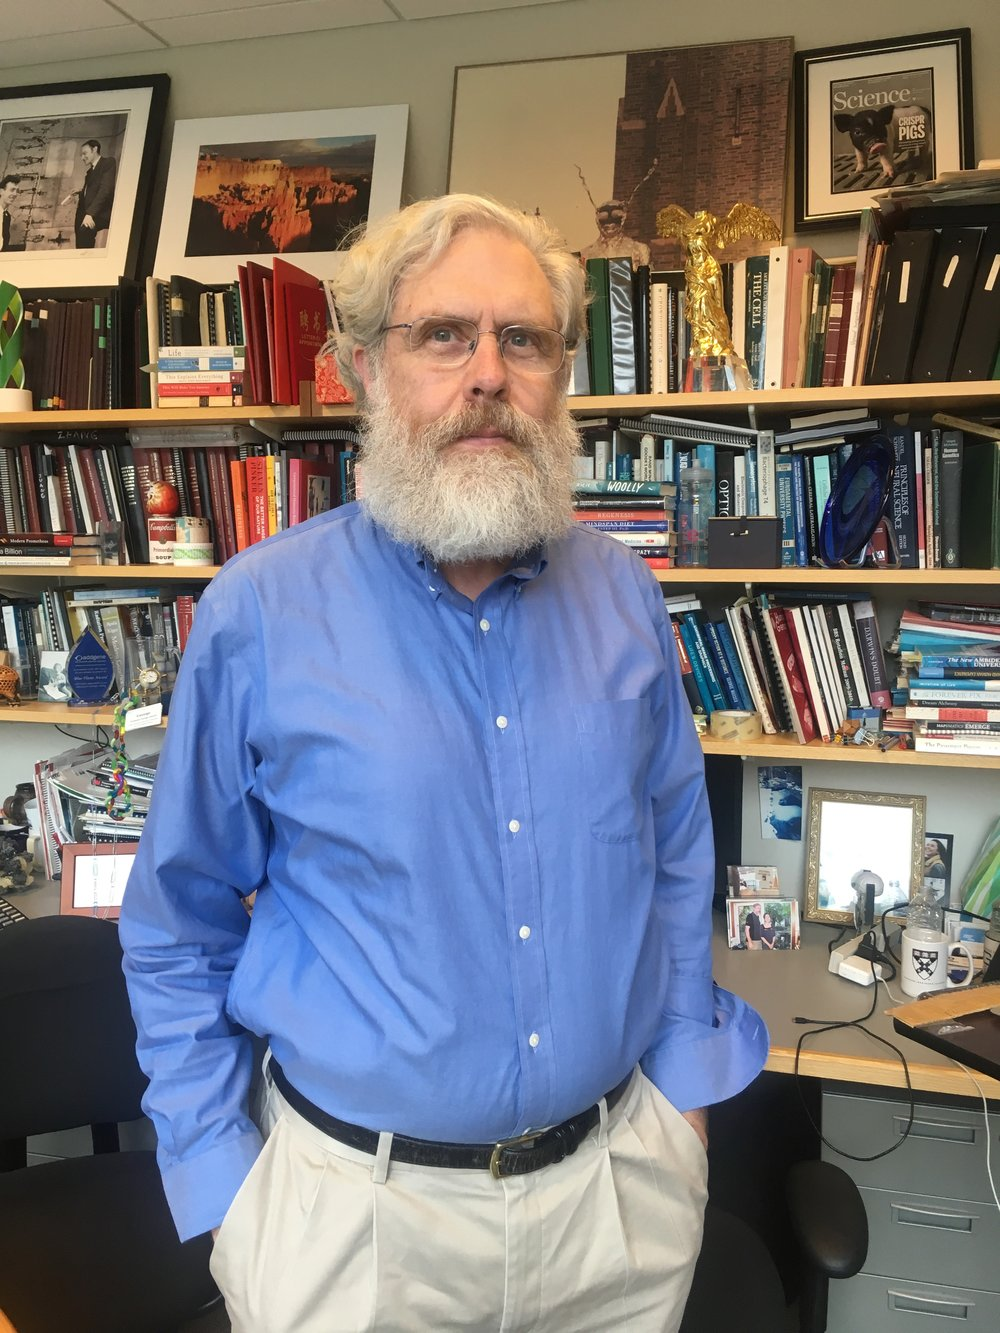 I was very lucky to have a chance to talk to one of the brightest minds of molecular biology, meaning George Church. He is a professor at Harvard Medical School and MiT. I visited him in his Boston office placed in HMS next to Wyss Institute, which he co-founded. -